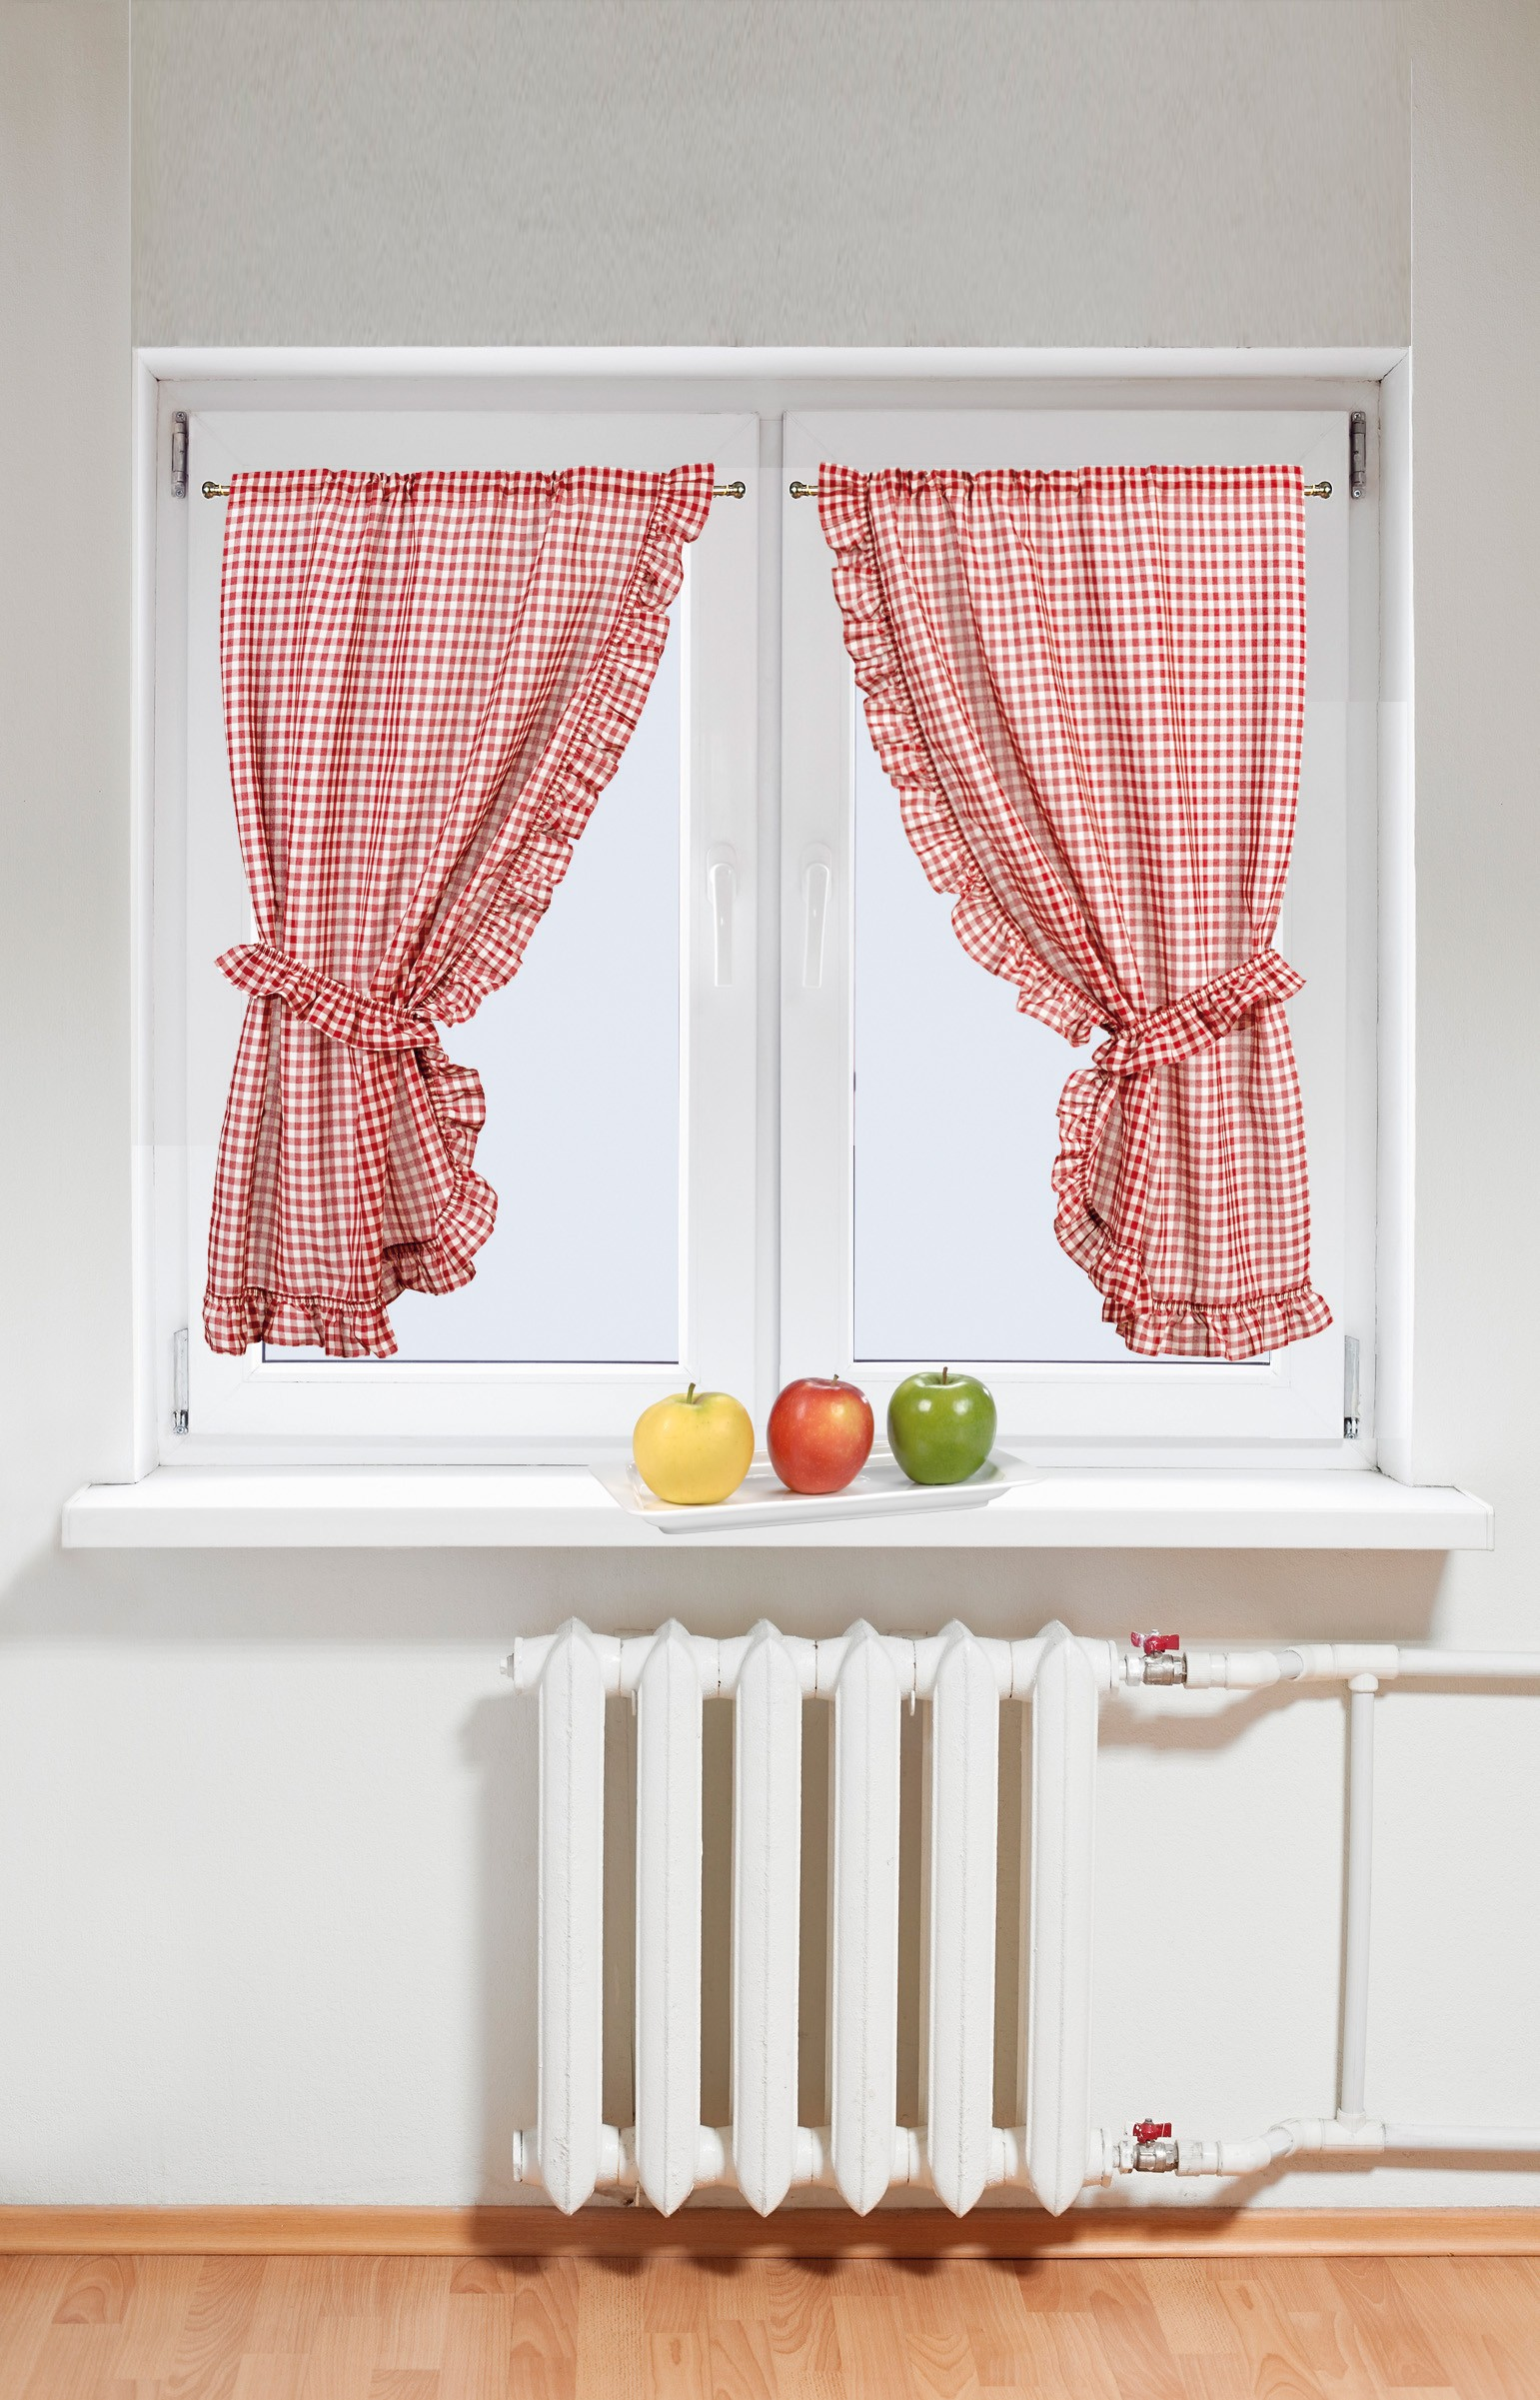 rideaux pour cuisine rouge retro window curtains rouge cuisine with petit rideau cuisine. Black Bedroom Furniture Sets. Home Design Ideas